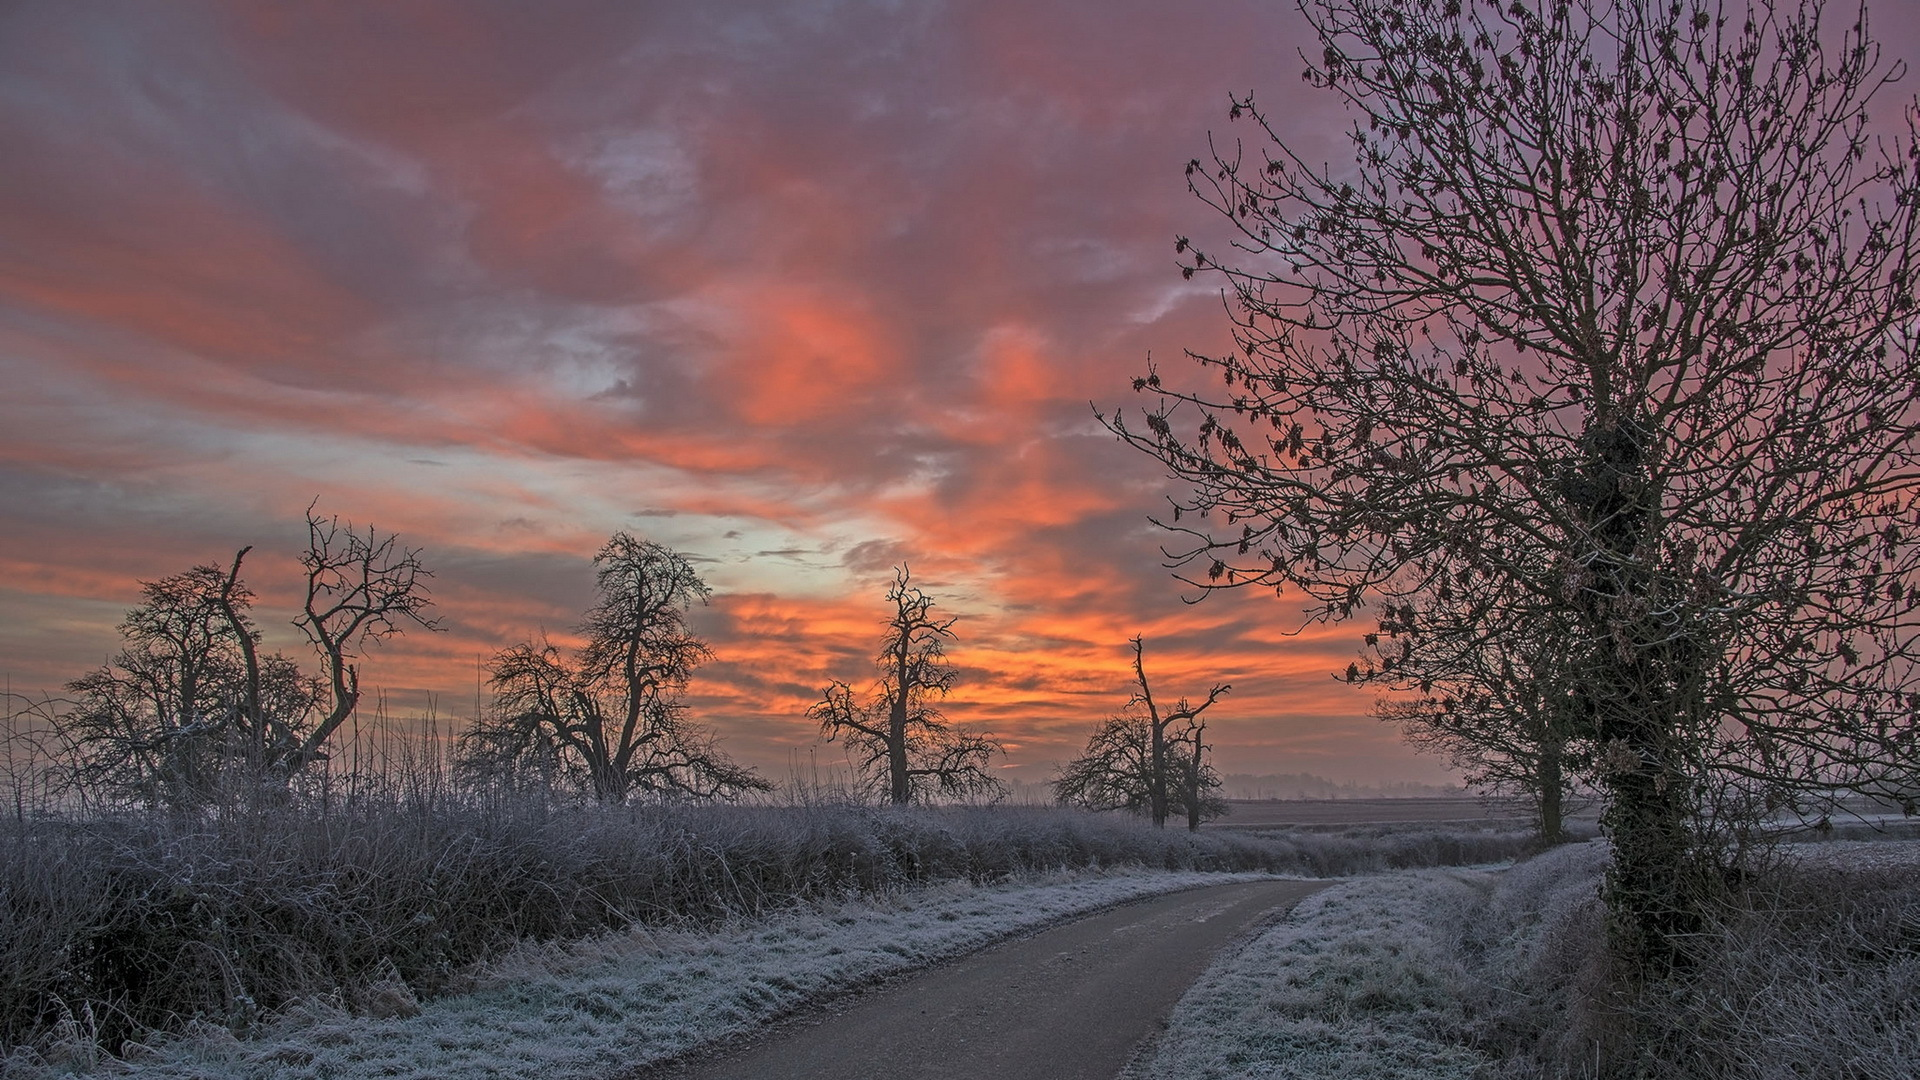 Frosty Road At A Beautiful Sunset HD Desktop Background wallpaper